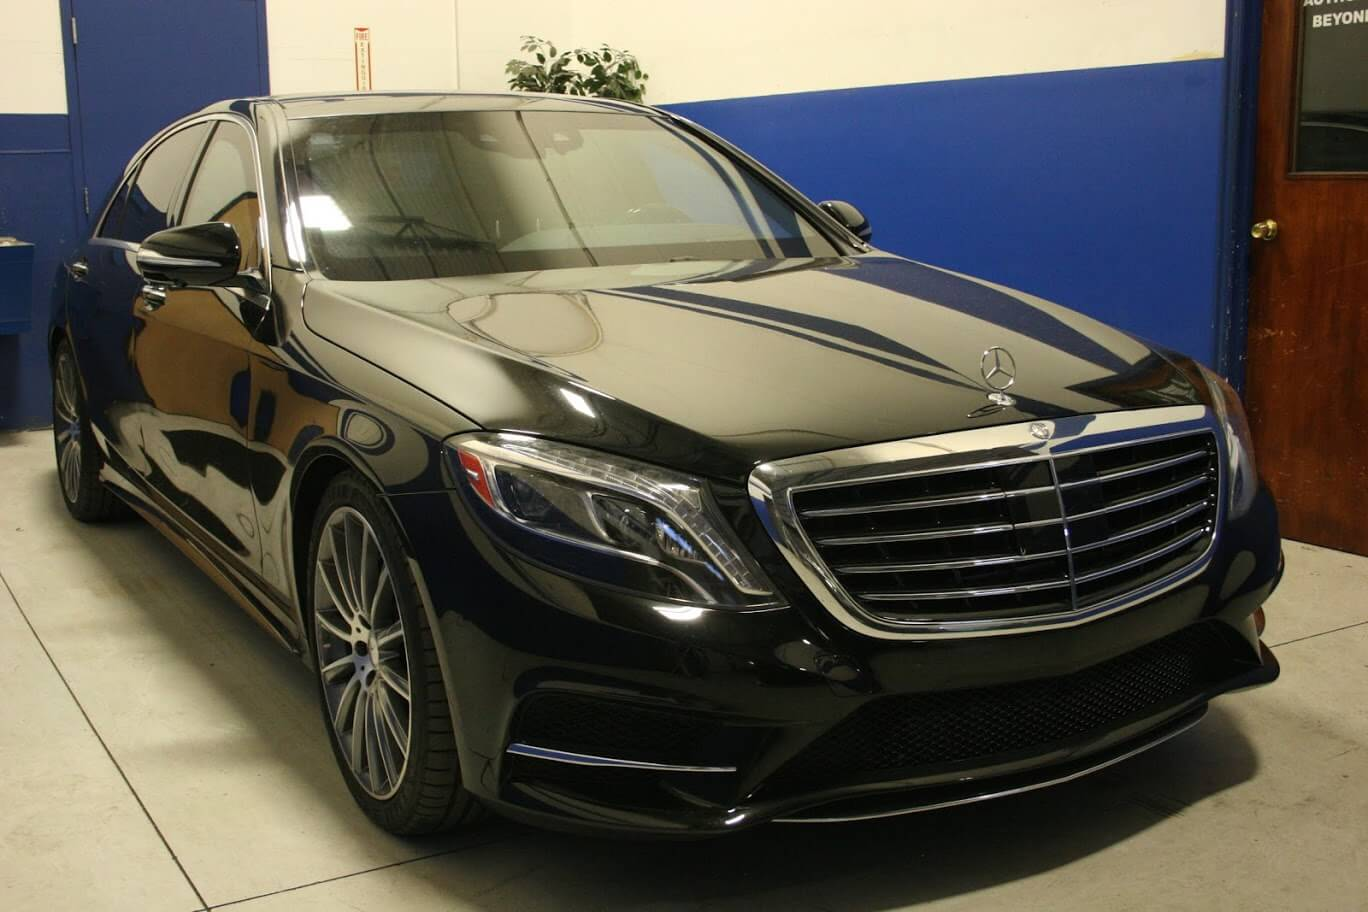 mercedes-benz s600 maybach armored b6+ - ukrexport pvt co. - ecplaza